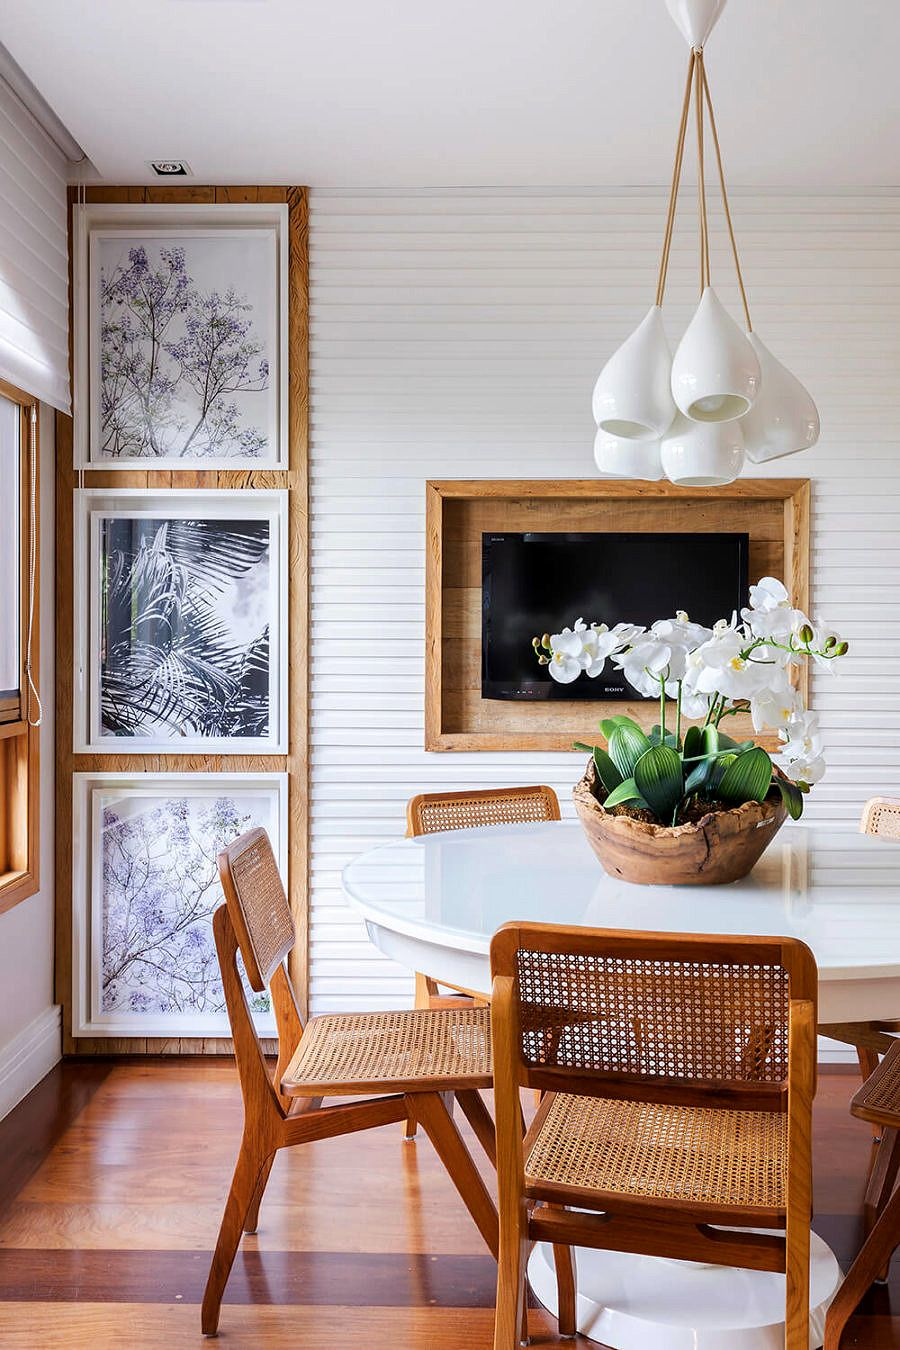 dining room, wooden floor, white round table, wooden rattan chairs, white pendants, white wall